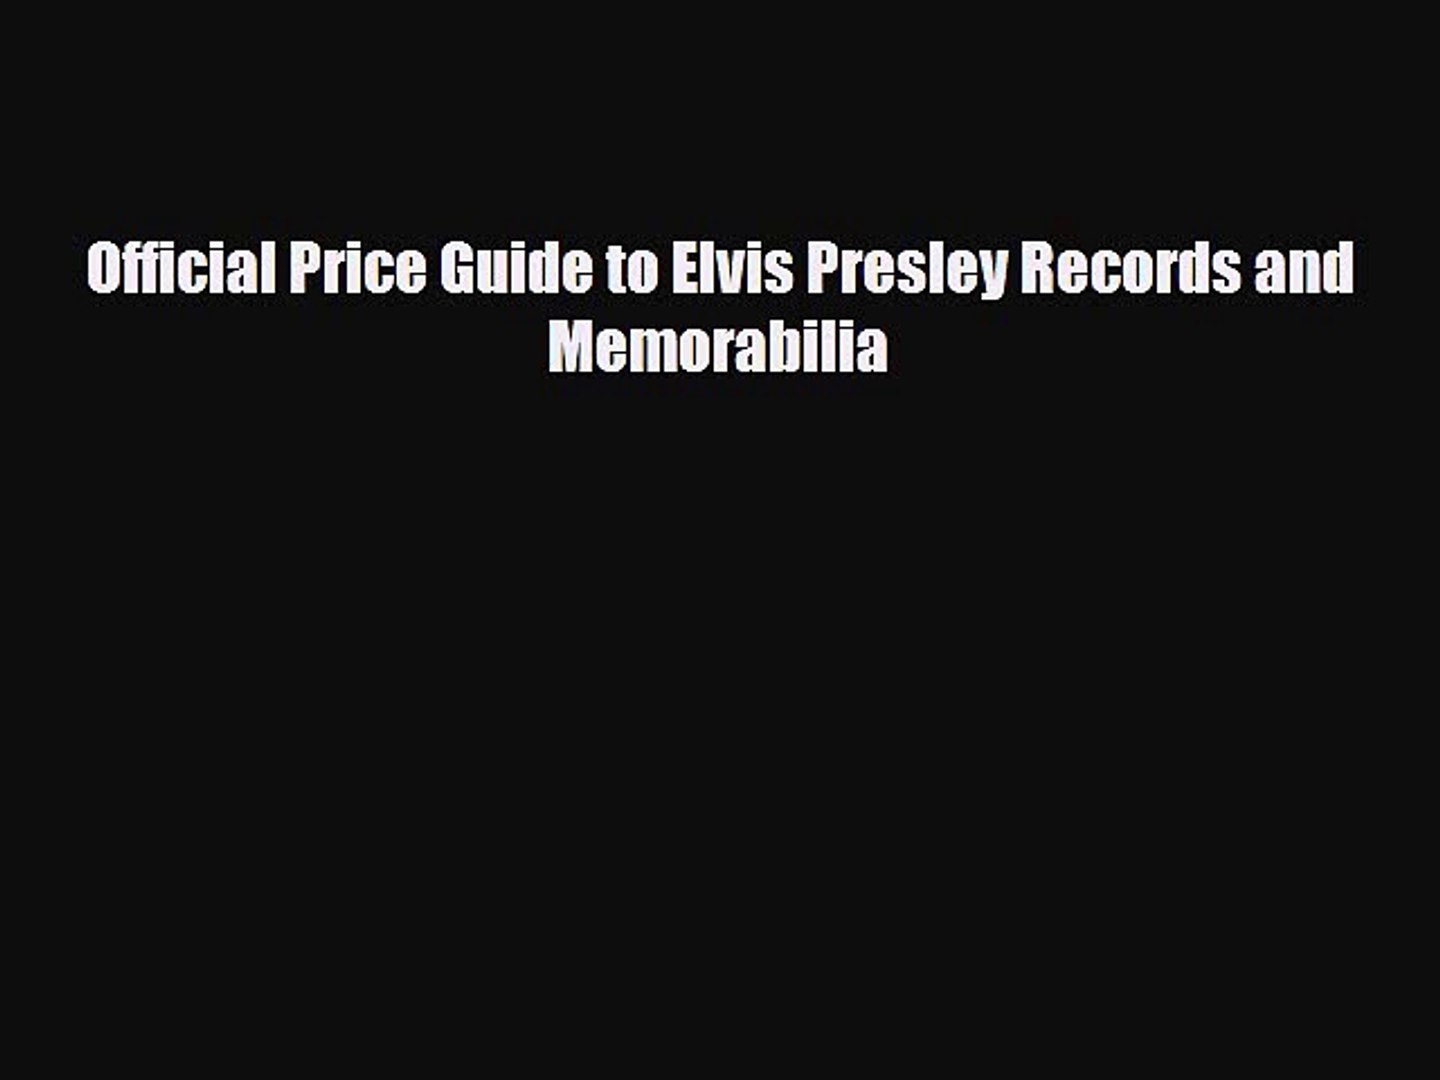 Read ‪Official Price Guide to Elvis Presley Records and Memorabilia‬ Ebook Free